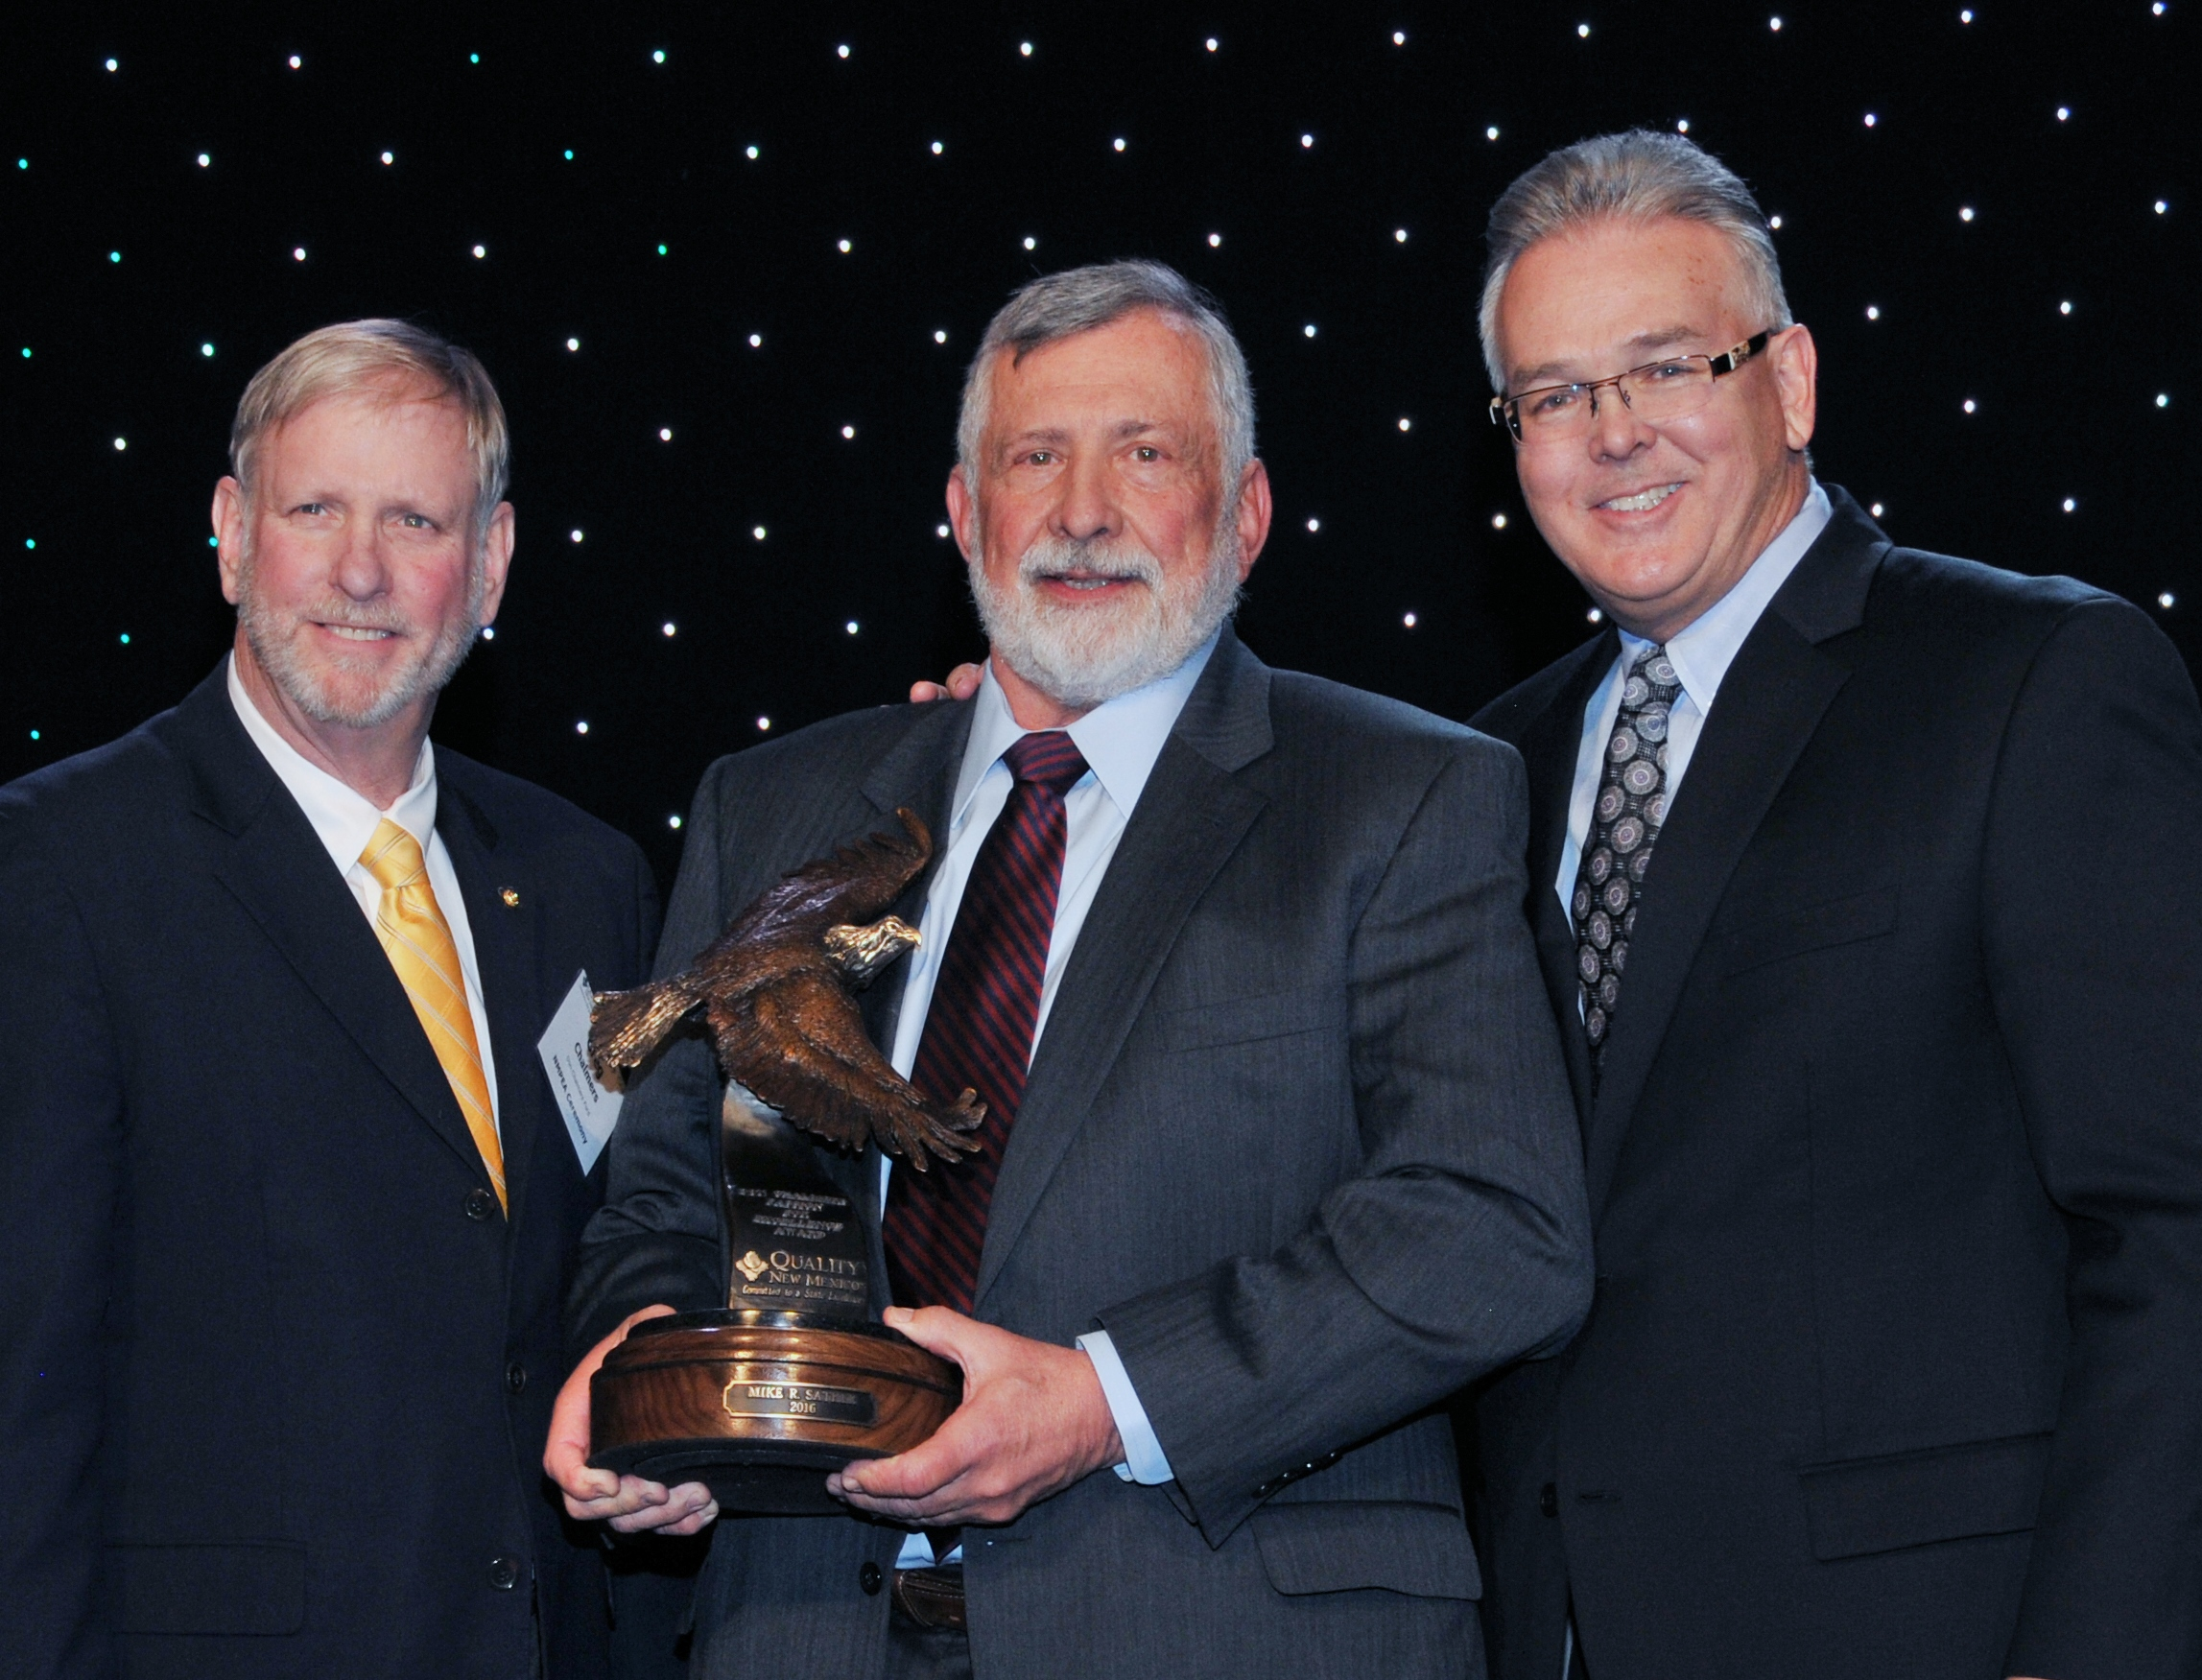 Dr. Mike Sather (photo center) was the first recipient of the award. Greg Chalmers (left) and Steve Keene (right) presented the award at the 2016 Learning Summit.